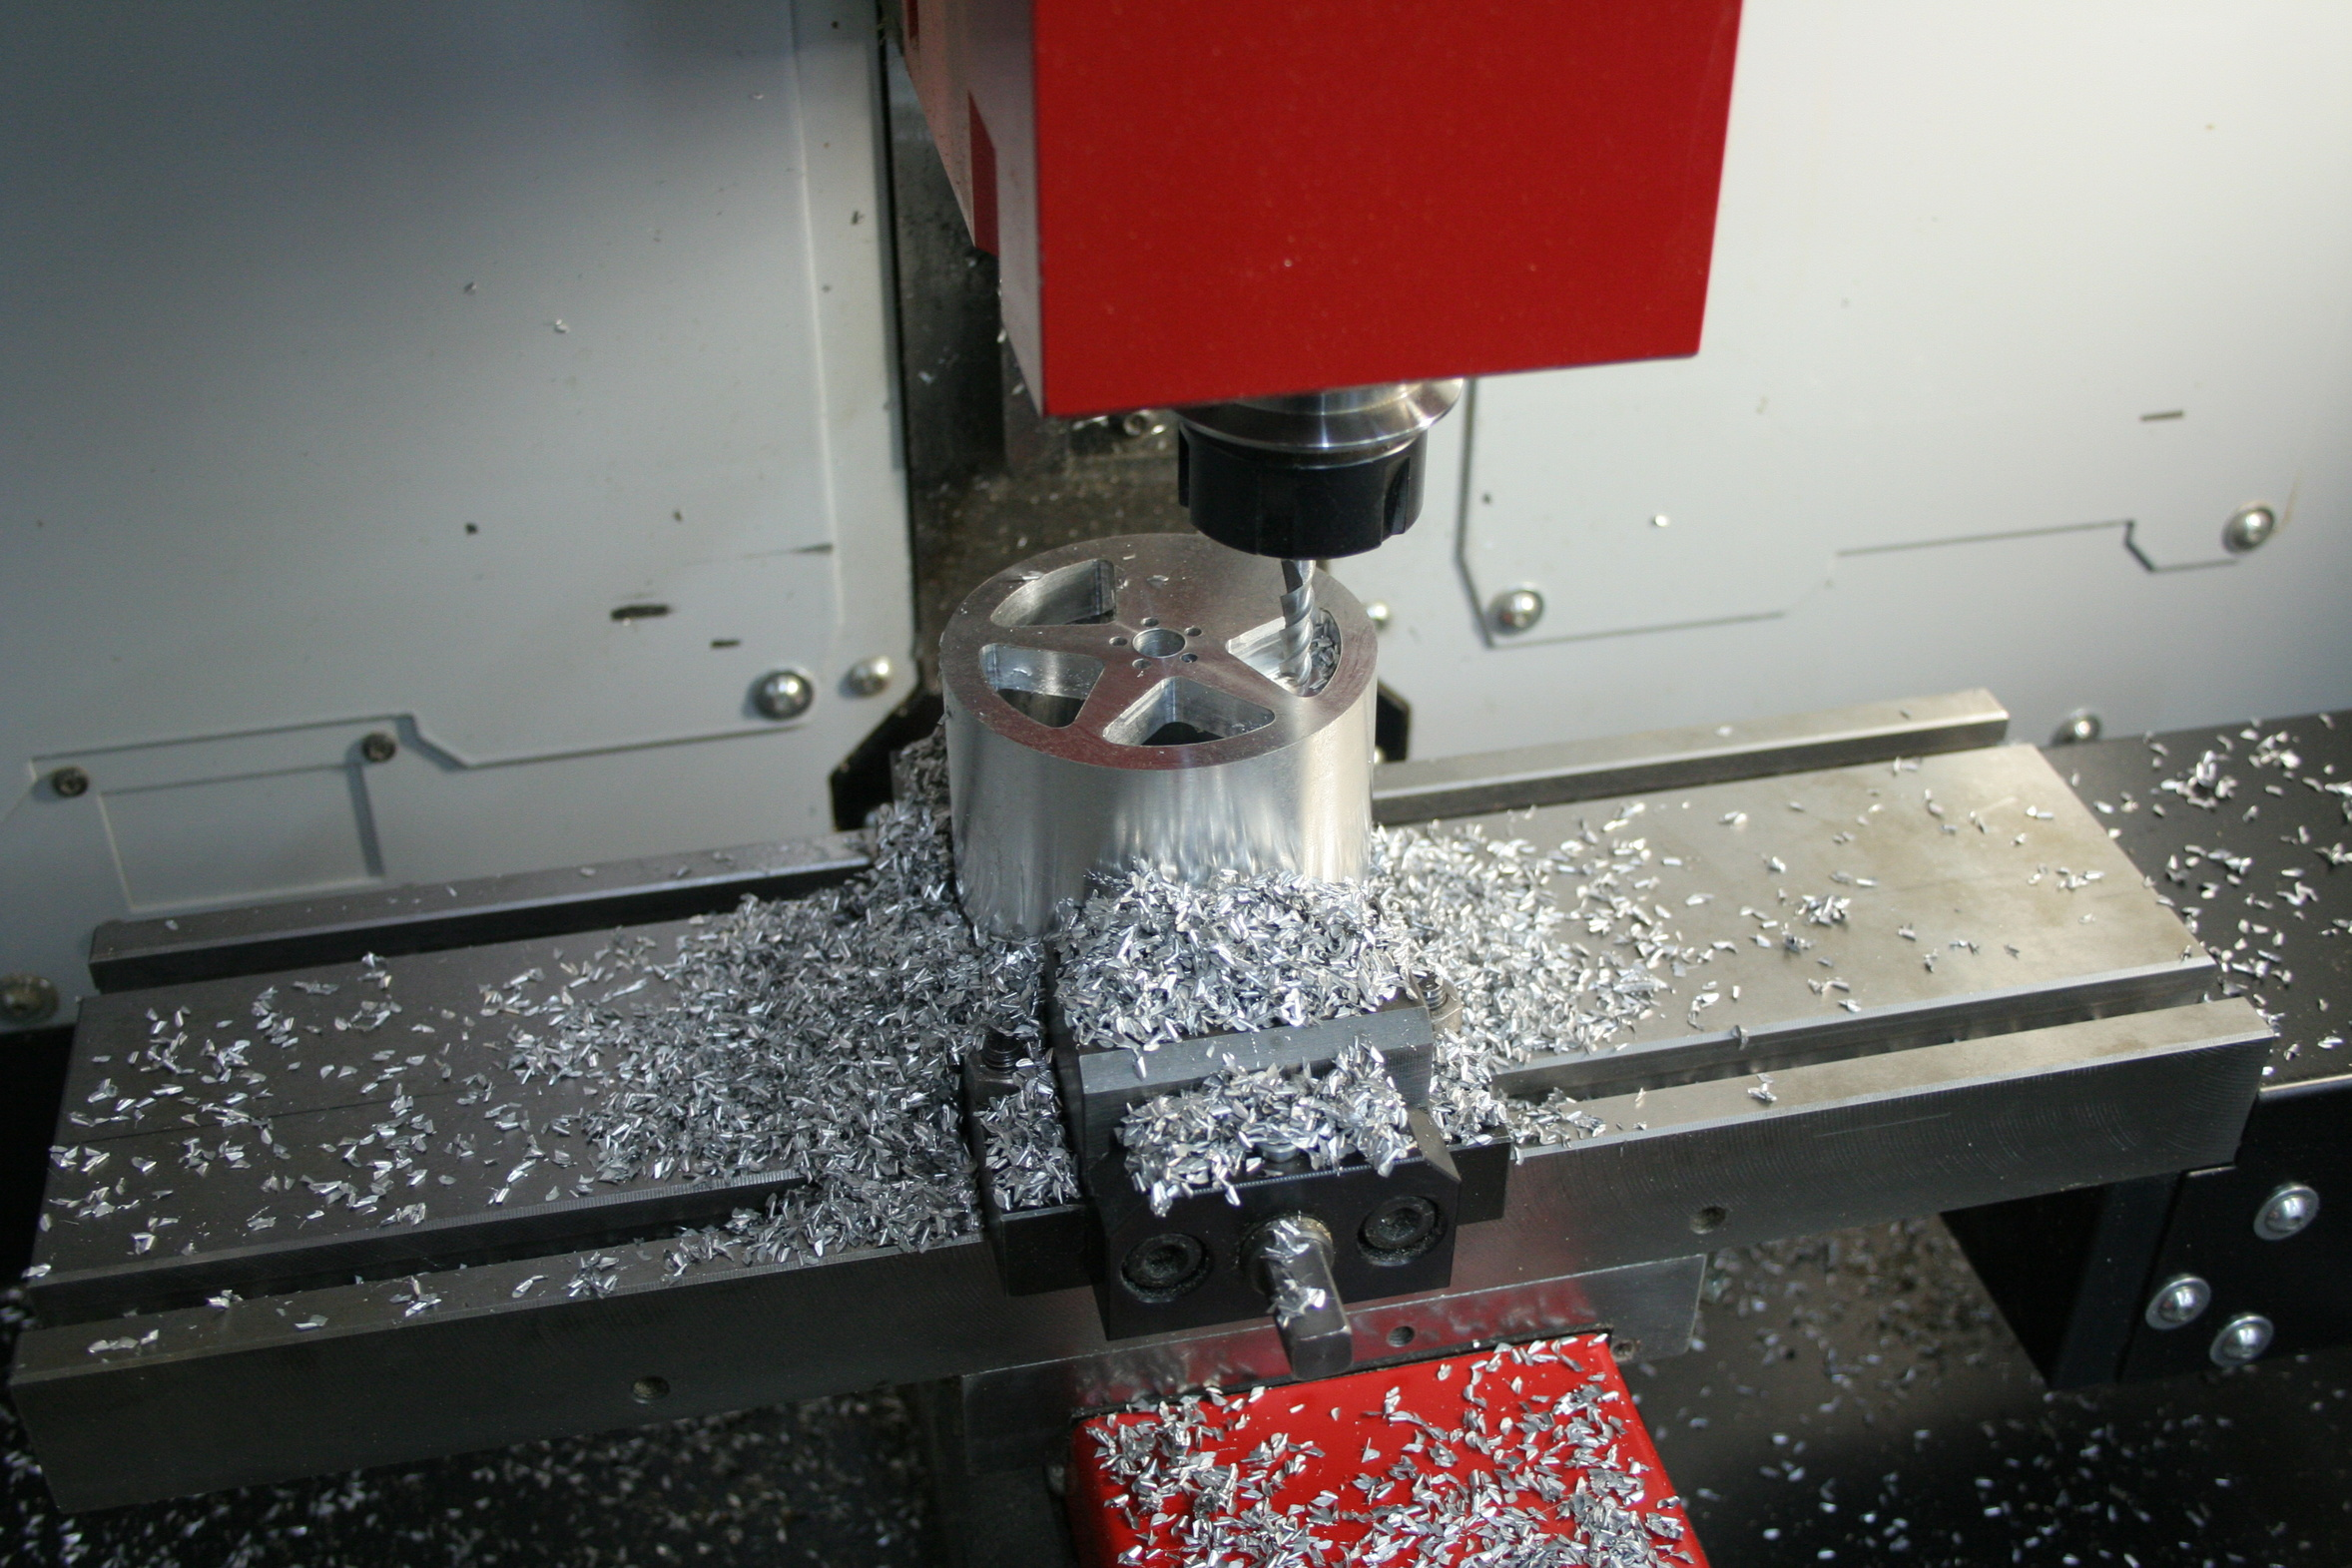 Dry Machining – Milling, Grinding, Drilling with CO2 Coolant